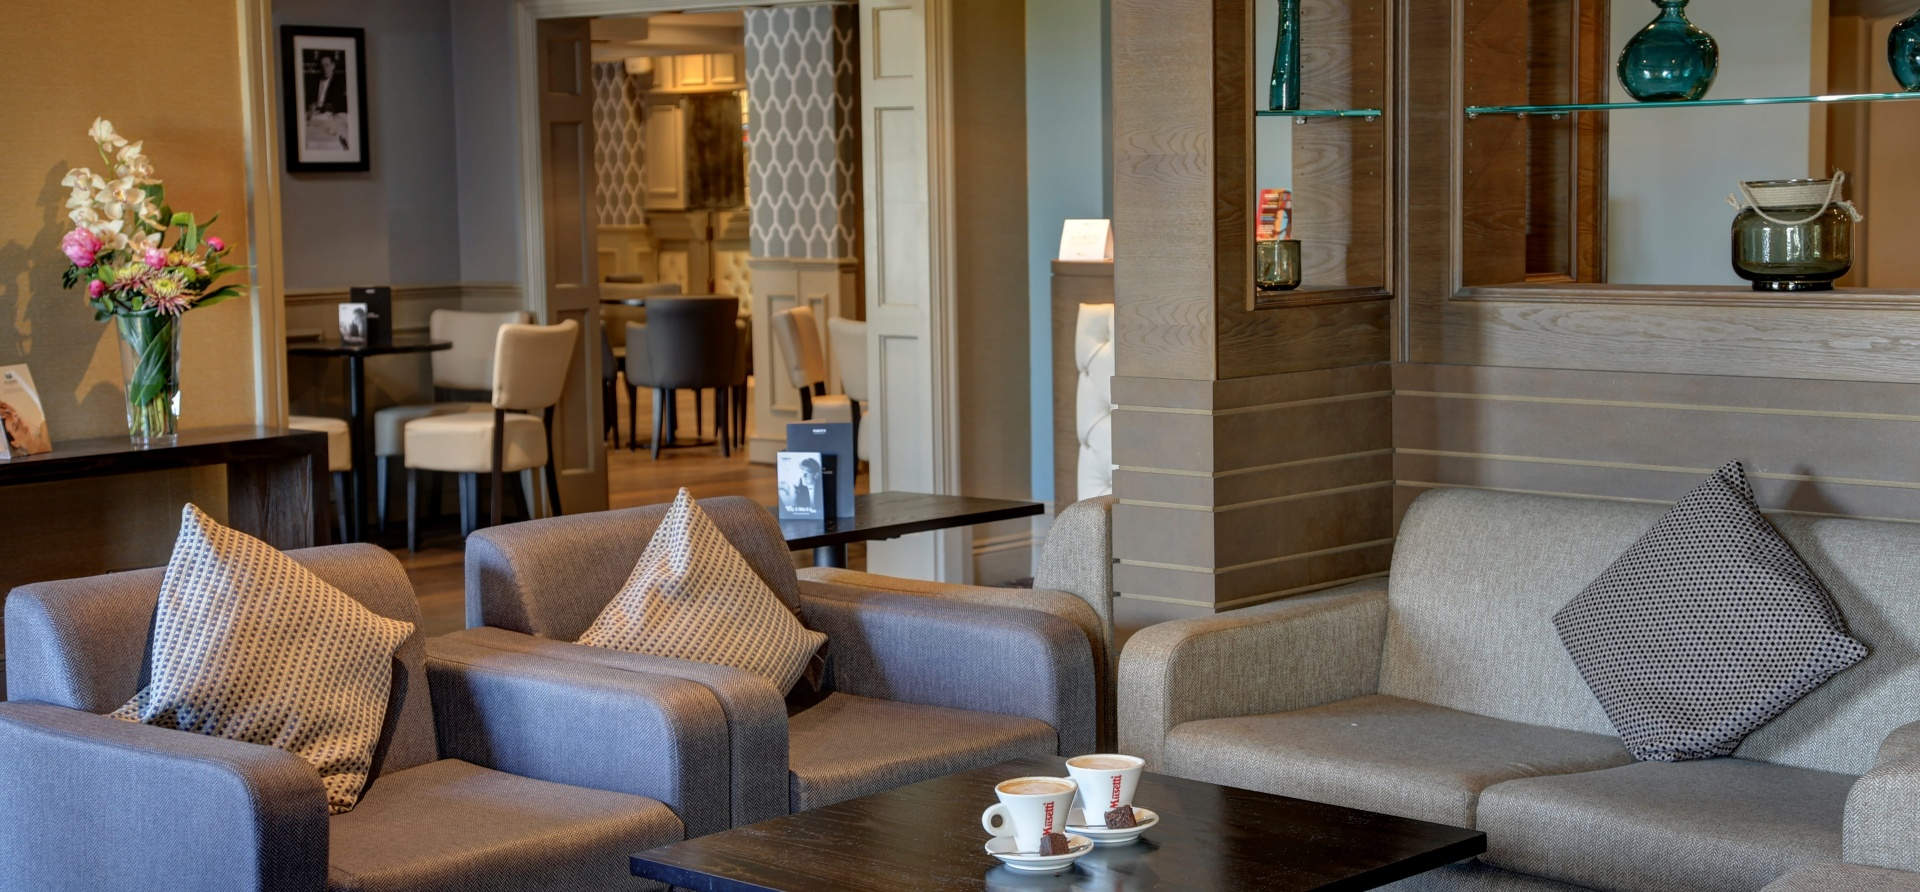 Afternoon Tea For Two At Yew Lodge Hotel Derby-1